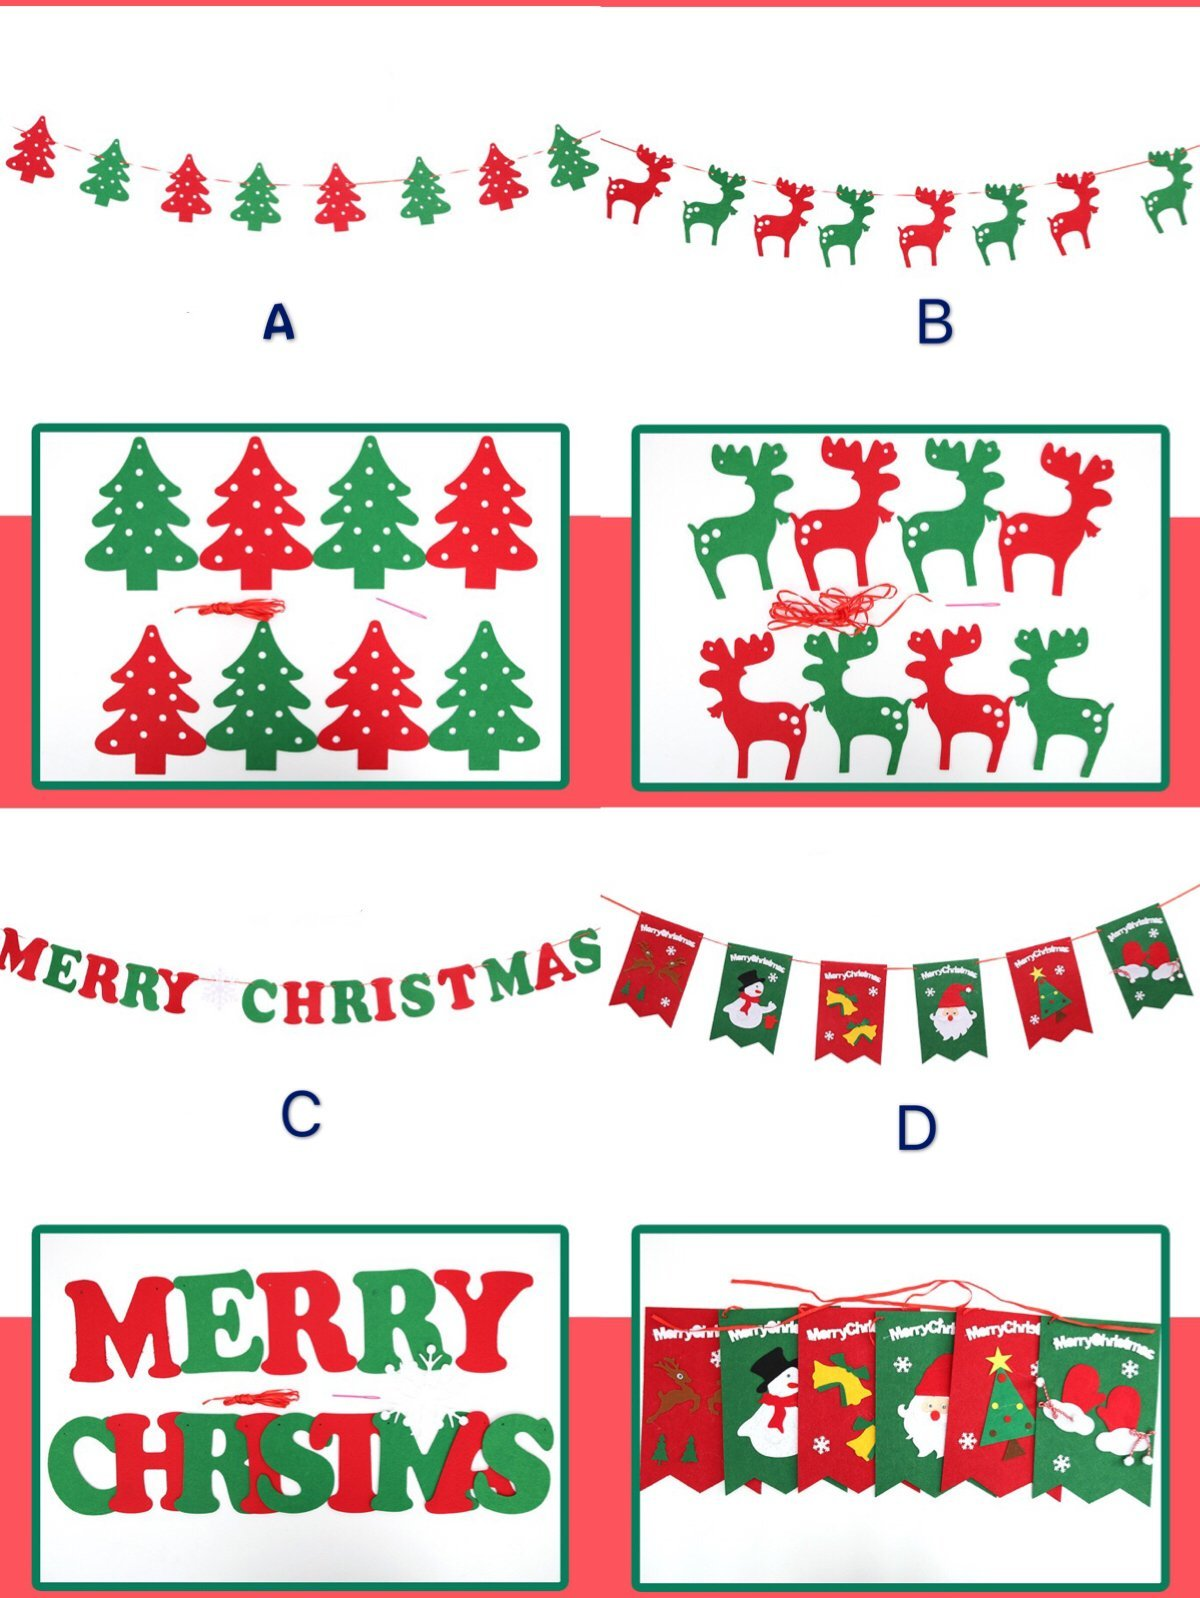 LareinaXXX Christmas Pull Flag Xmas Gifts Hanging Flag Bunting Home Party Window Tree Wall Decor Banners(4pack)